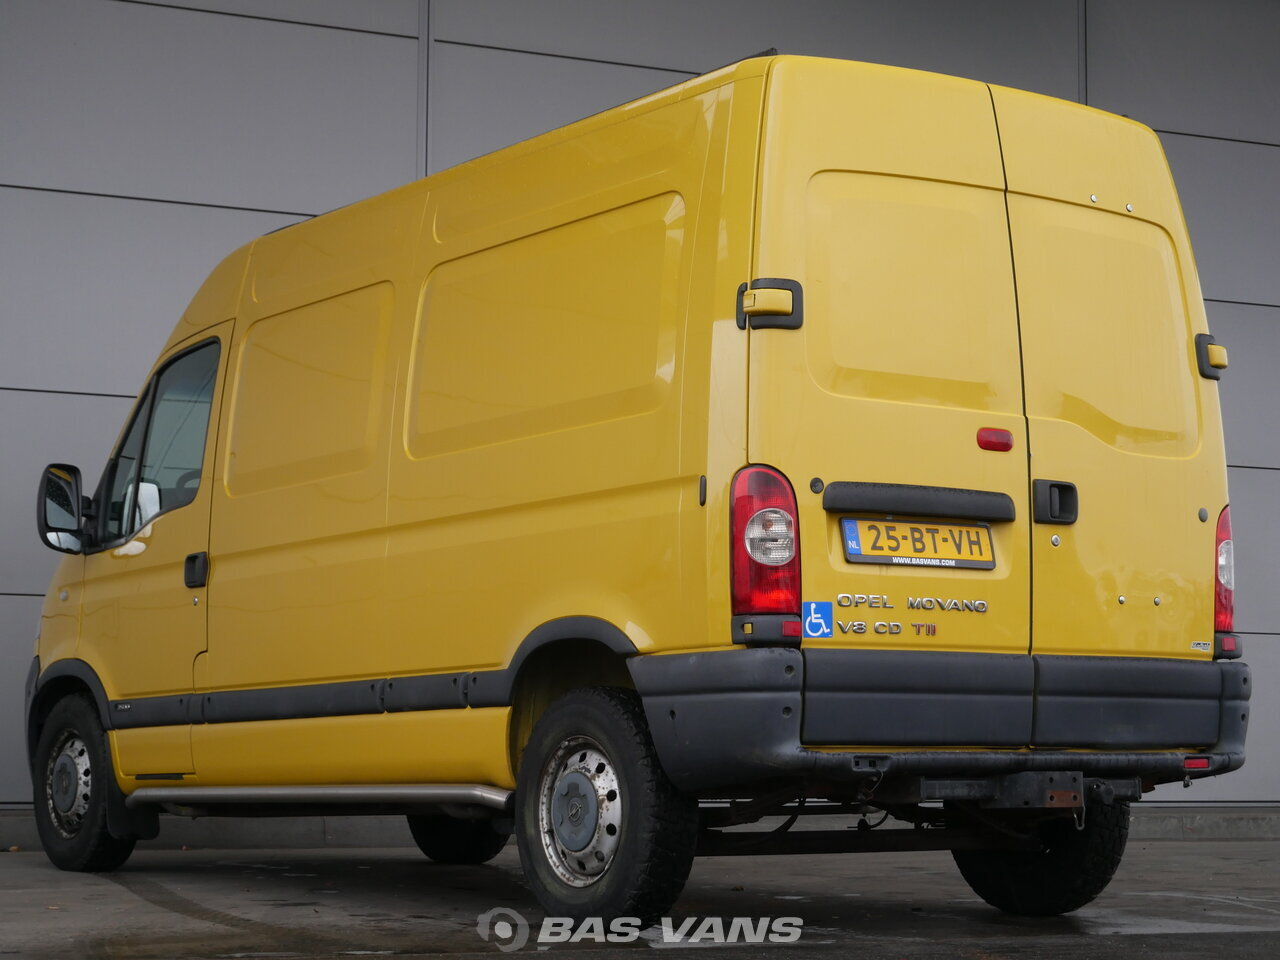 opel movano 2.5 cdti 2005 closed van light commercial